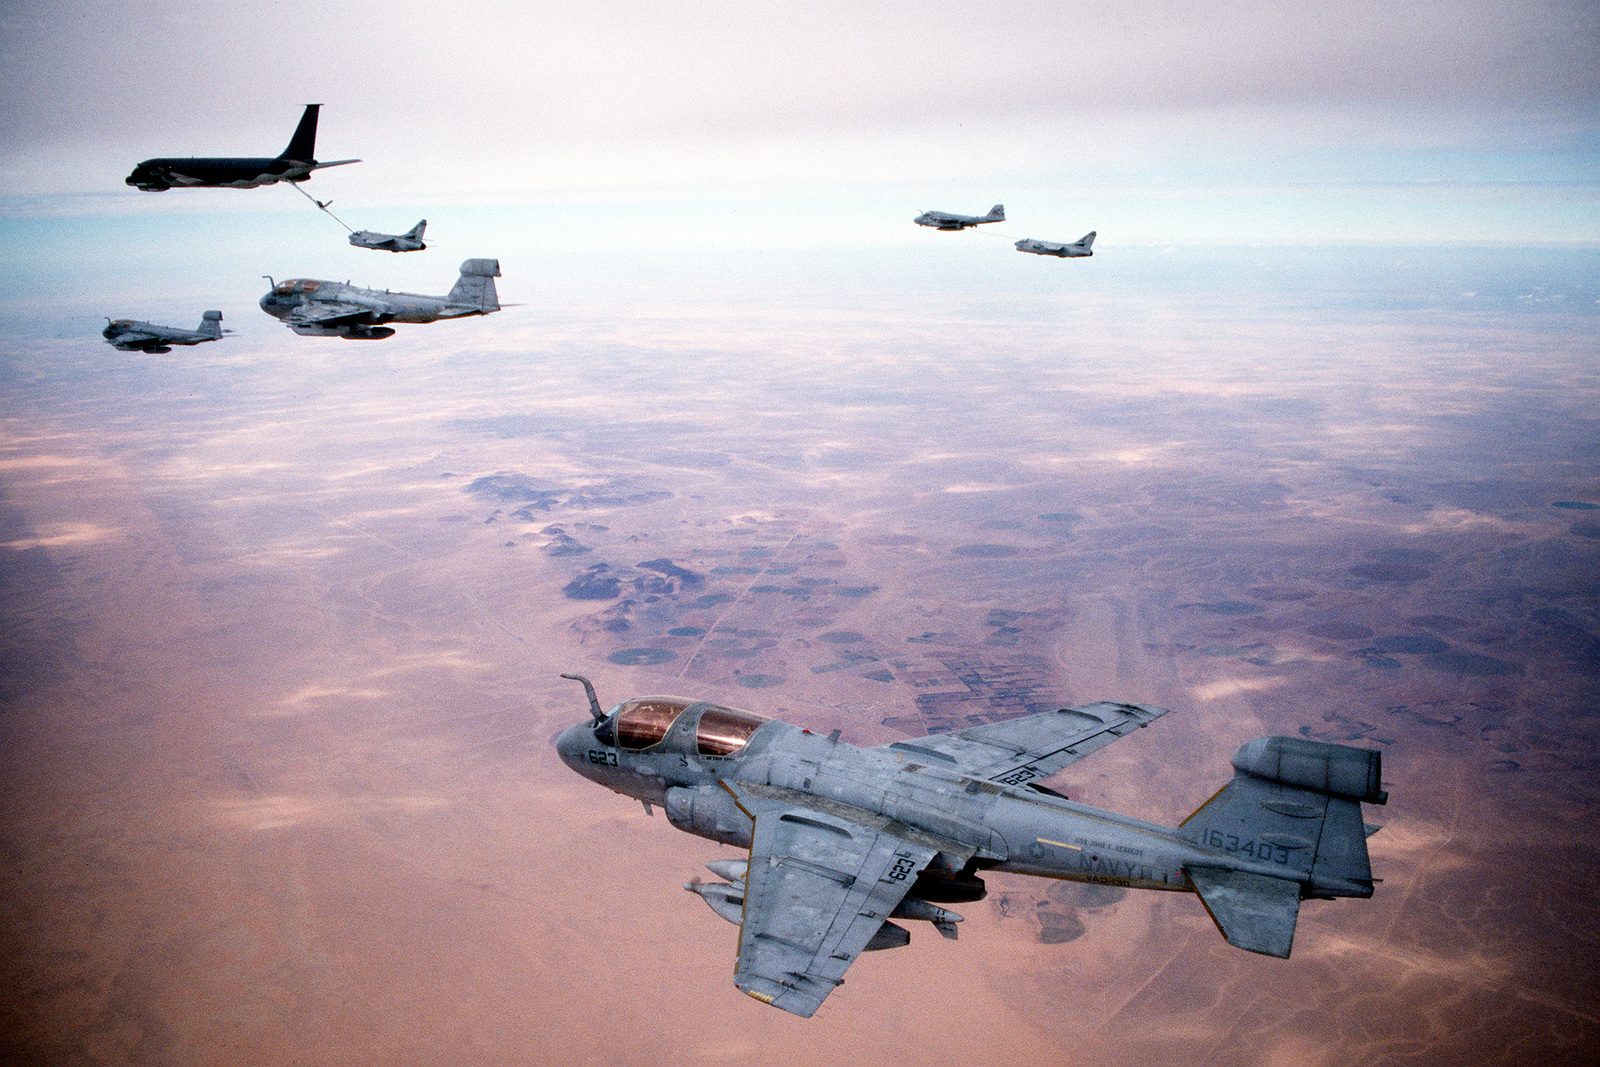 "Three Tactical Electronic Warfare Squadron 130 (VAQ-130) EA-6B Prowler aircraft wait as an Attack Squadron 72 (VA-72) A-7E Corsair aircraft is refueled by an Air Force KC-135E Stratotanker aircraft to refuel while en route to targets in Iraq during Operation Desert Storm. At upper right, an Attack Squadron 75 (VA-75) A-6E Intruder aircraft carrying a ""buddy store"" external fuel tank refuels a second Corsair aircraft. The Navy aircraft are based aboard the aircraft carrier USS JOHN F. KENNEDY (CV-67)"